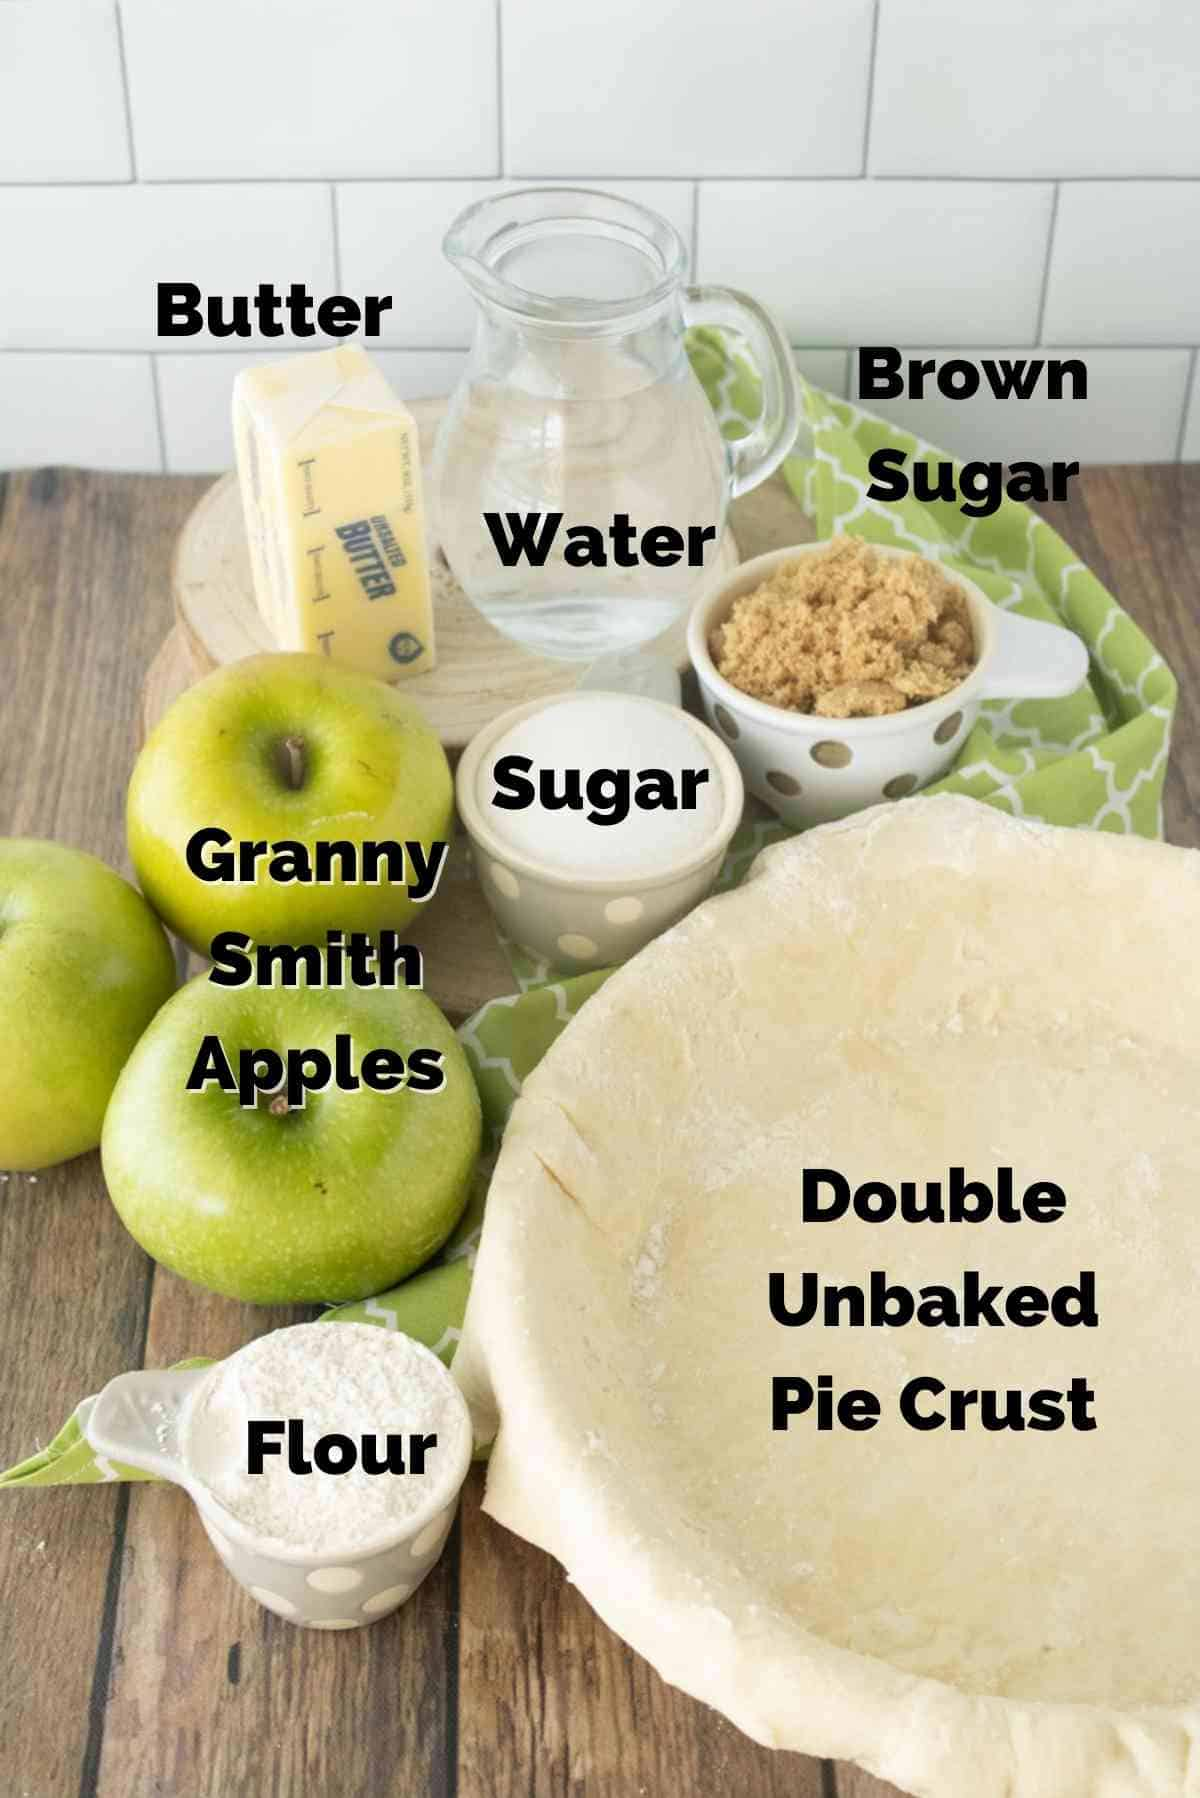 All you need is butter, sugar, brown sugar, water, flour, some granny smith apples and an unbaked pie crust for this pie!